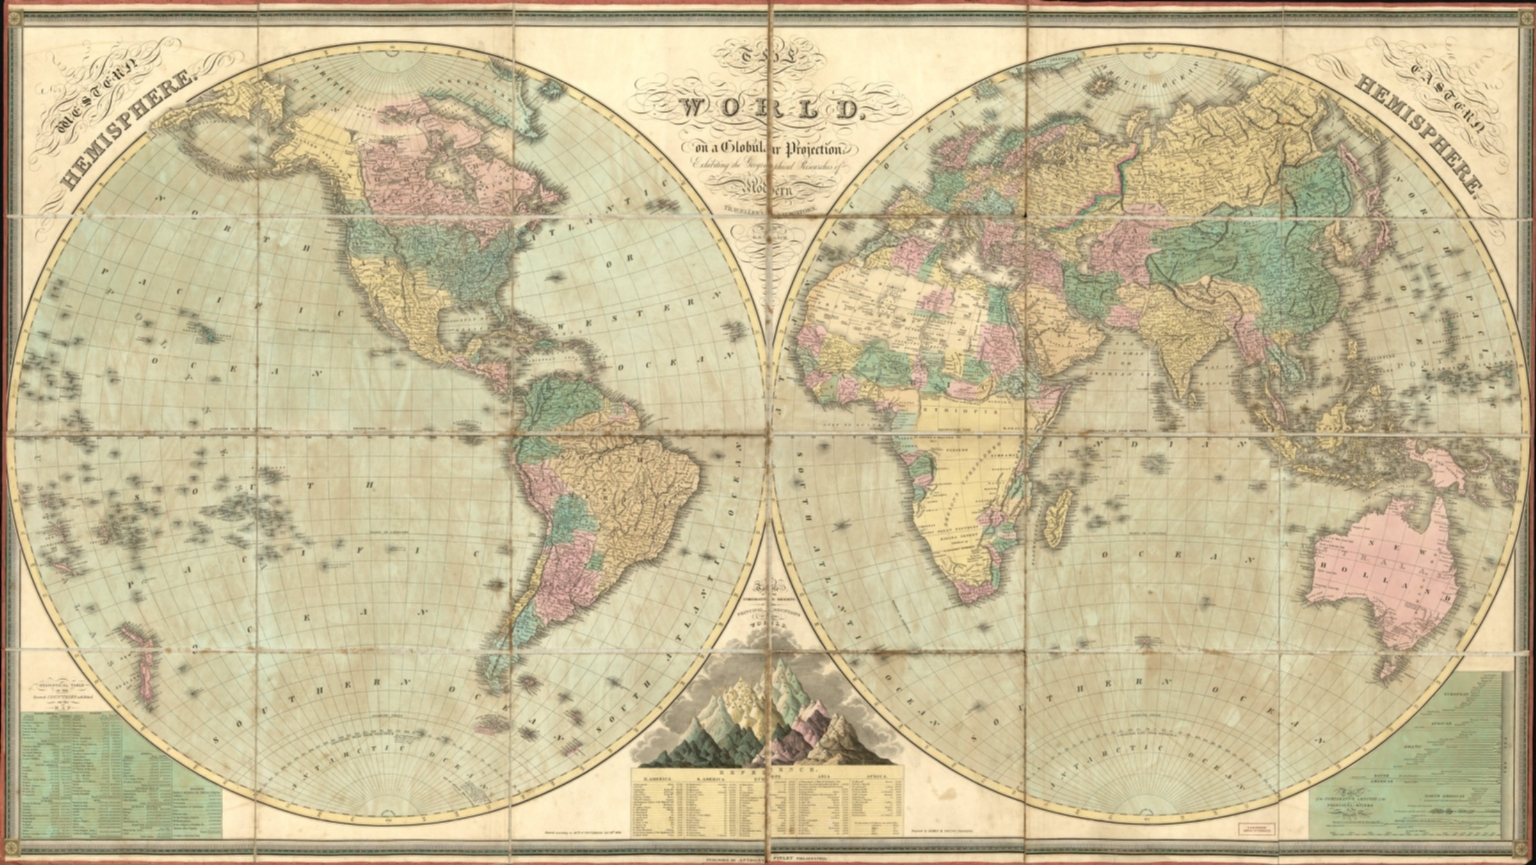 The world, on a globular projection, exhibiting the geographical researches of modern travellers & navigators